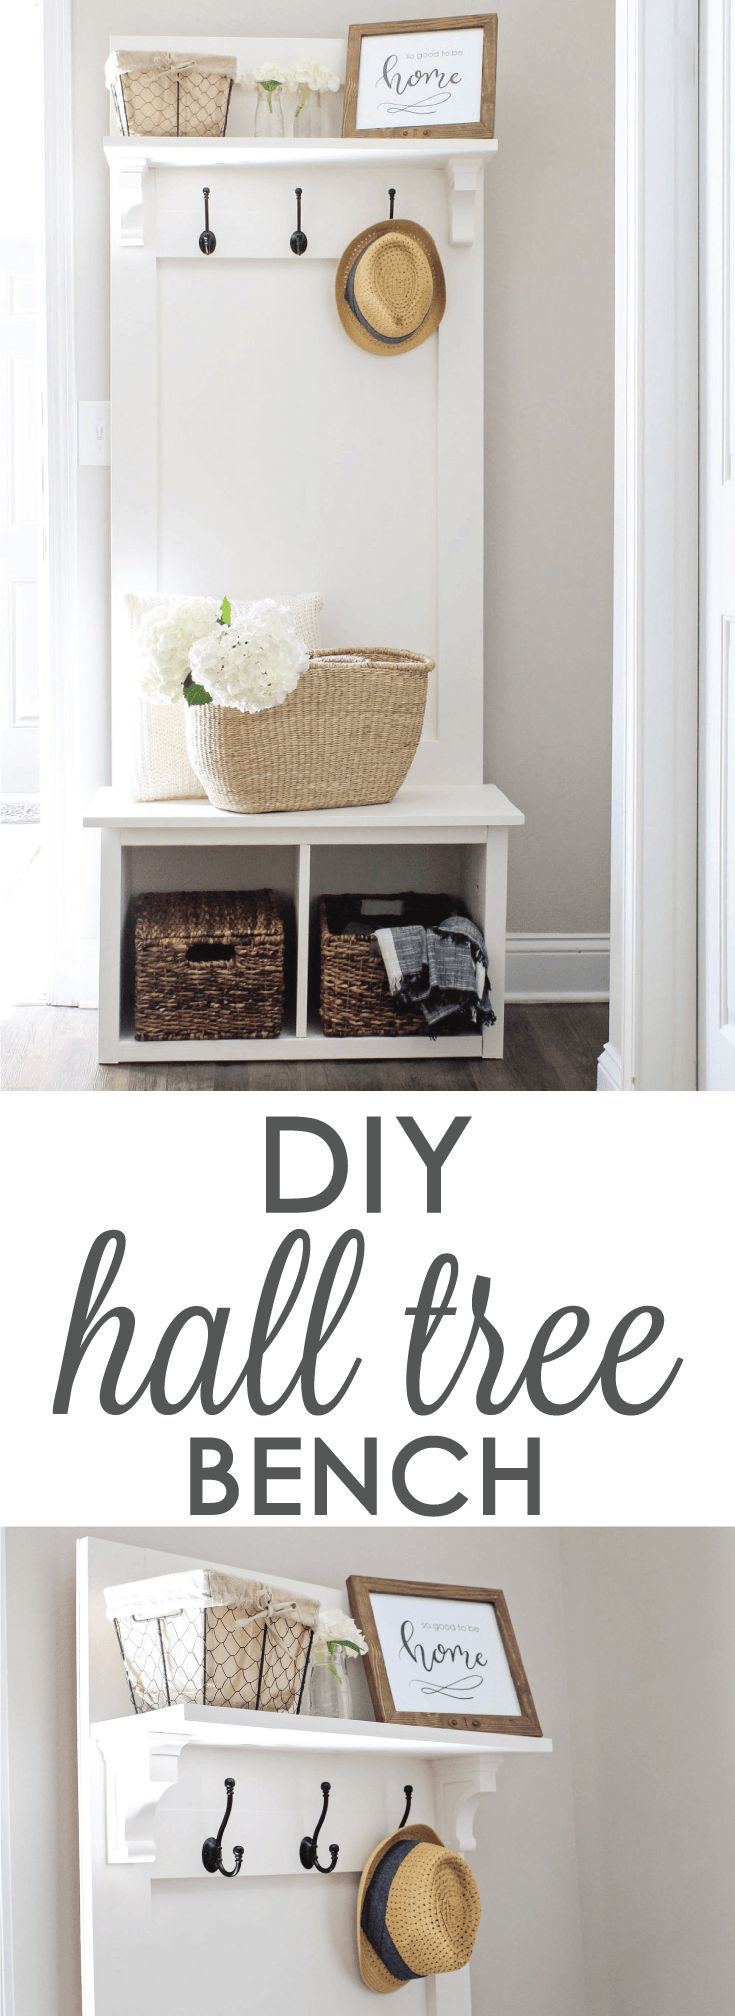 Since we moved into our apartment, I really wanted to build a cute hall tree bench for a little corner by our front door where we desperately needed some organization and a place to p…